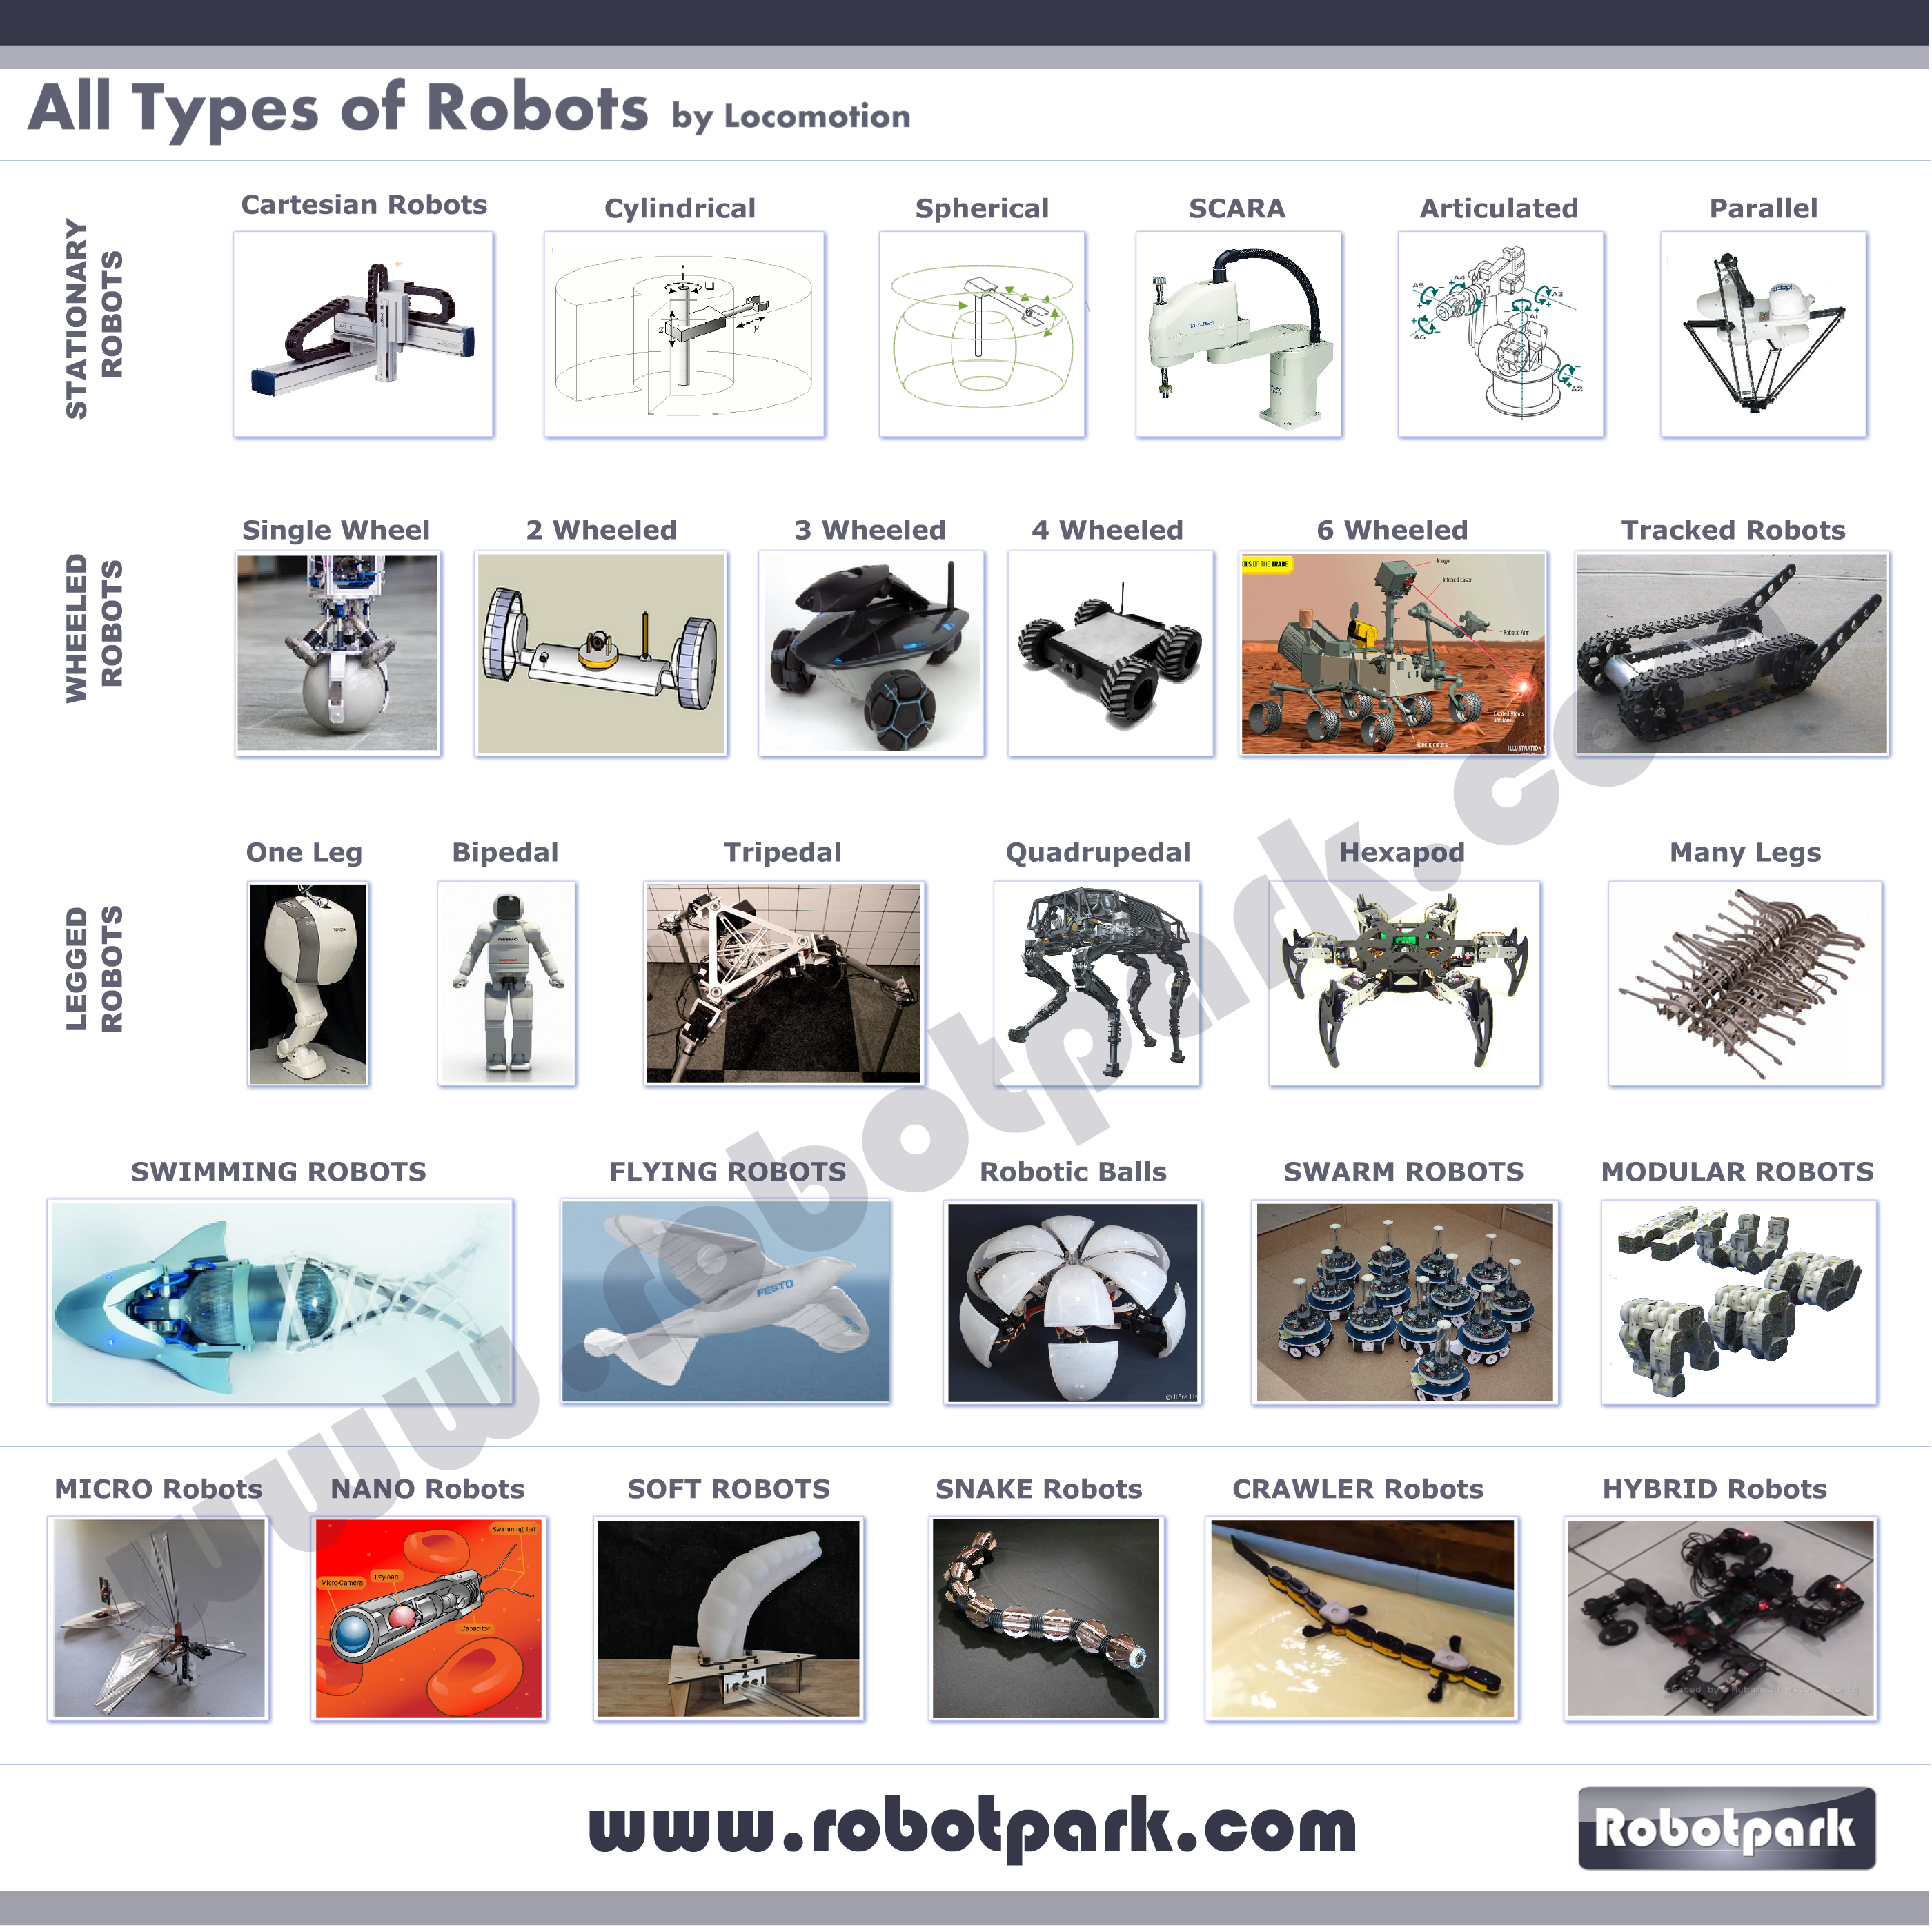 All-Types-Of-Robots